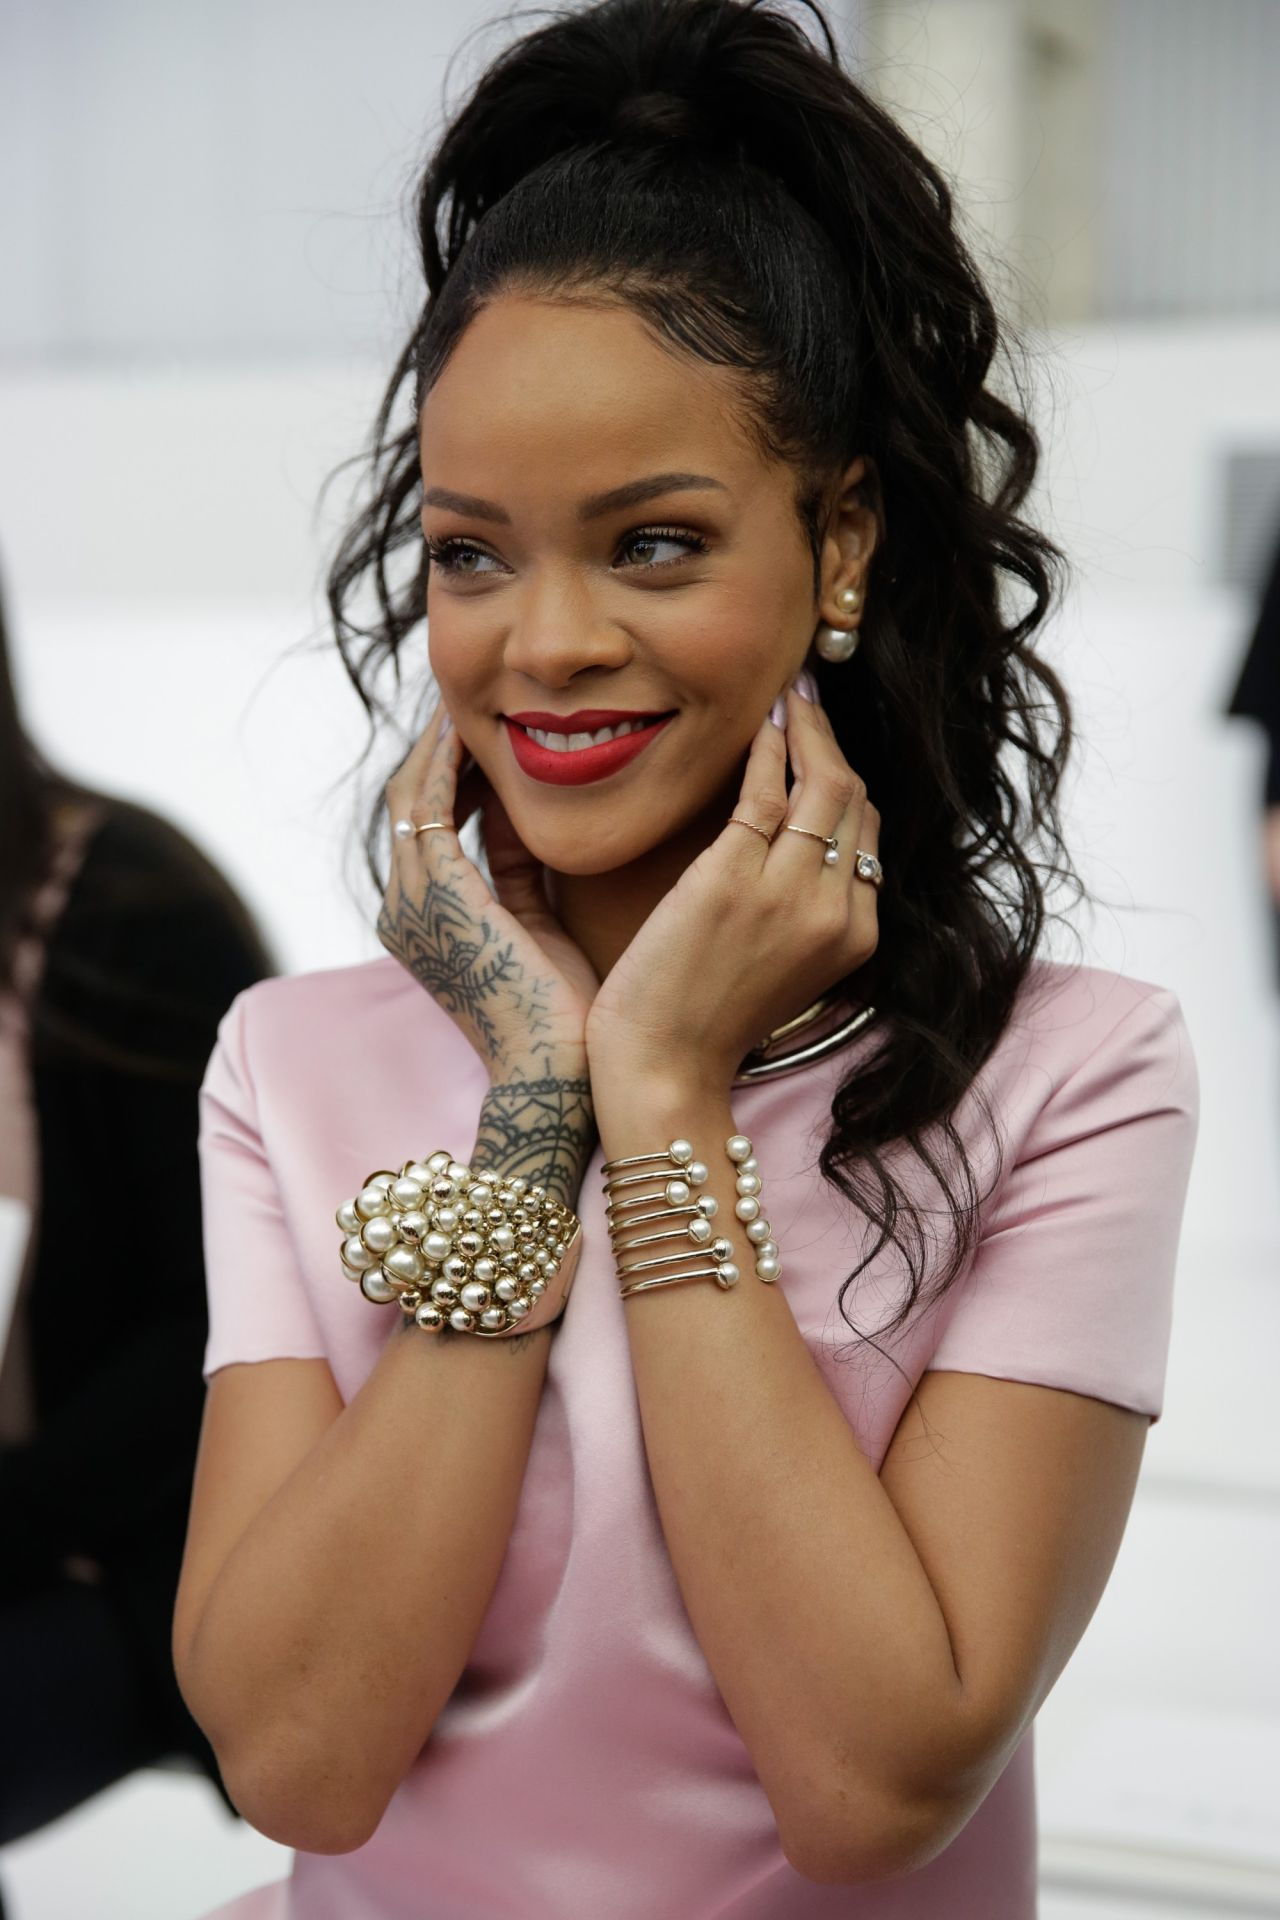 Rihanna Dior Cruise 2015 Fashion Show May 2014